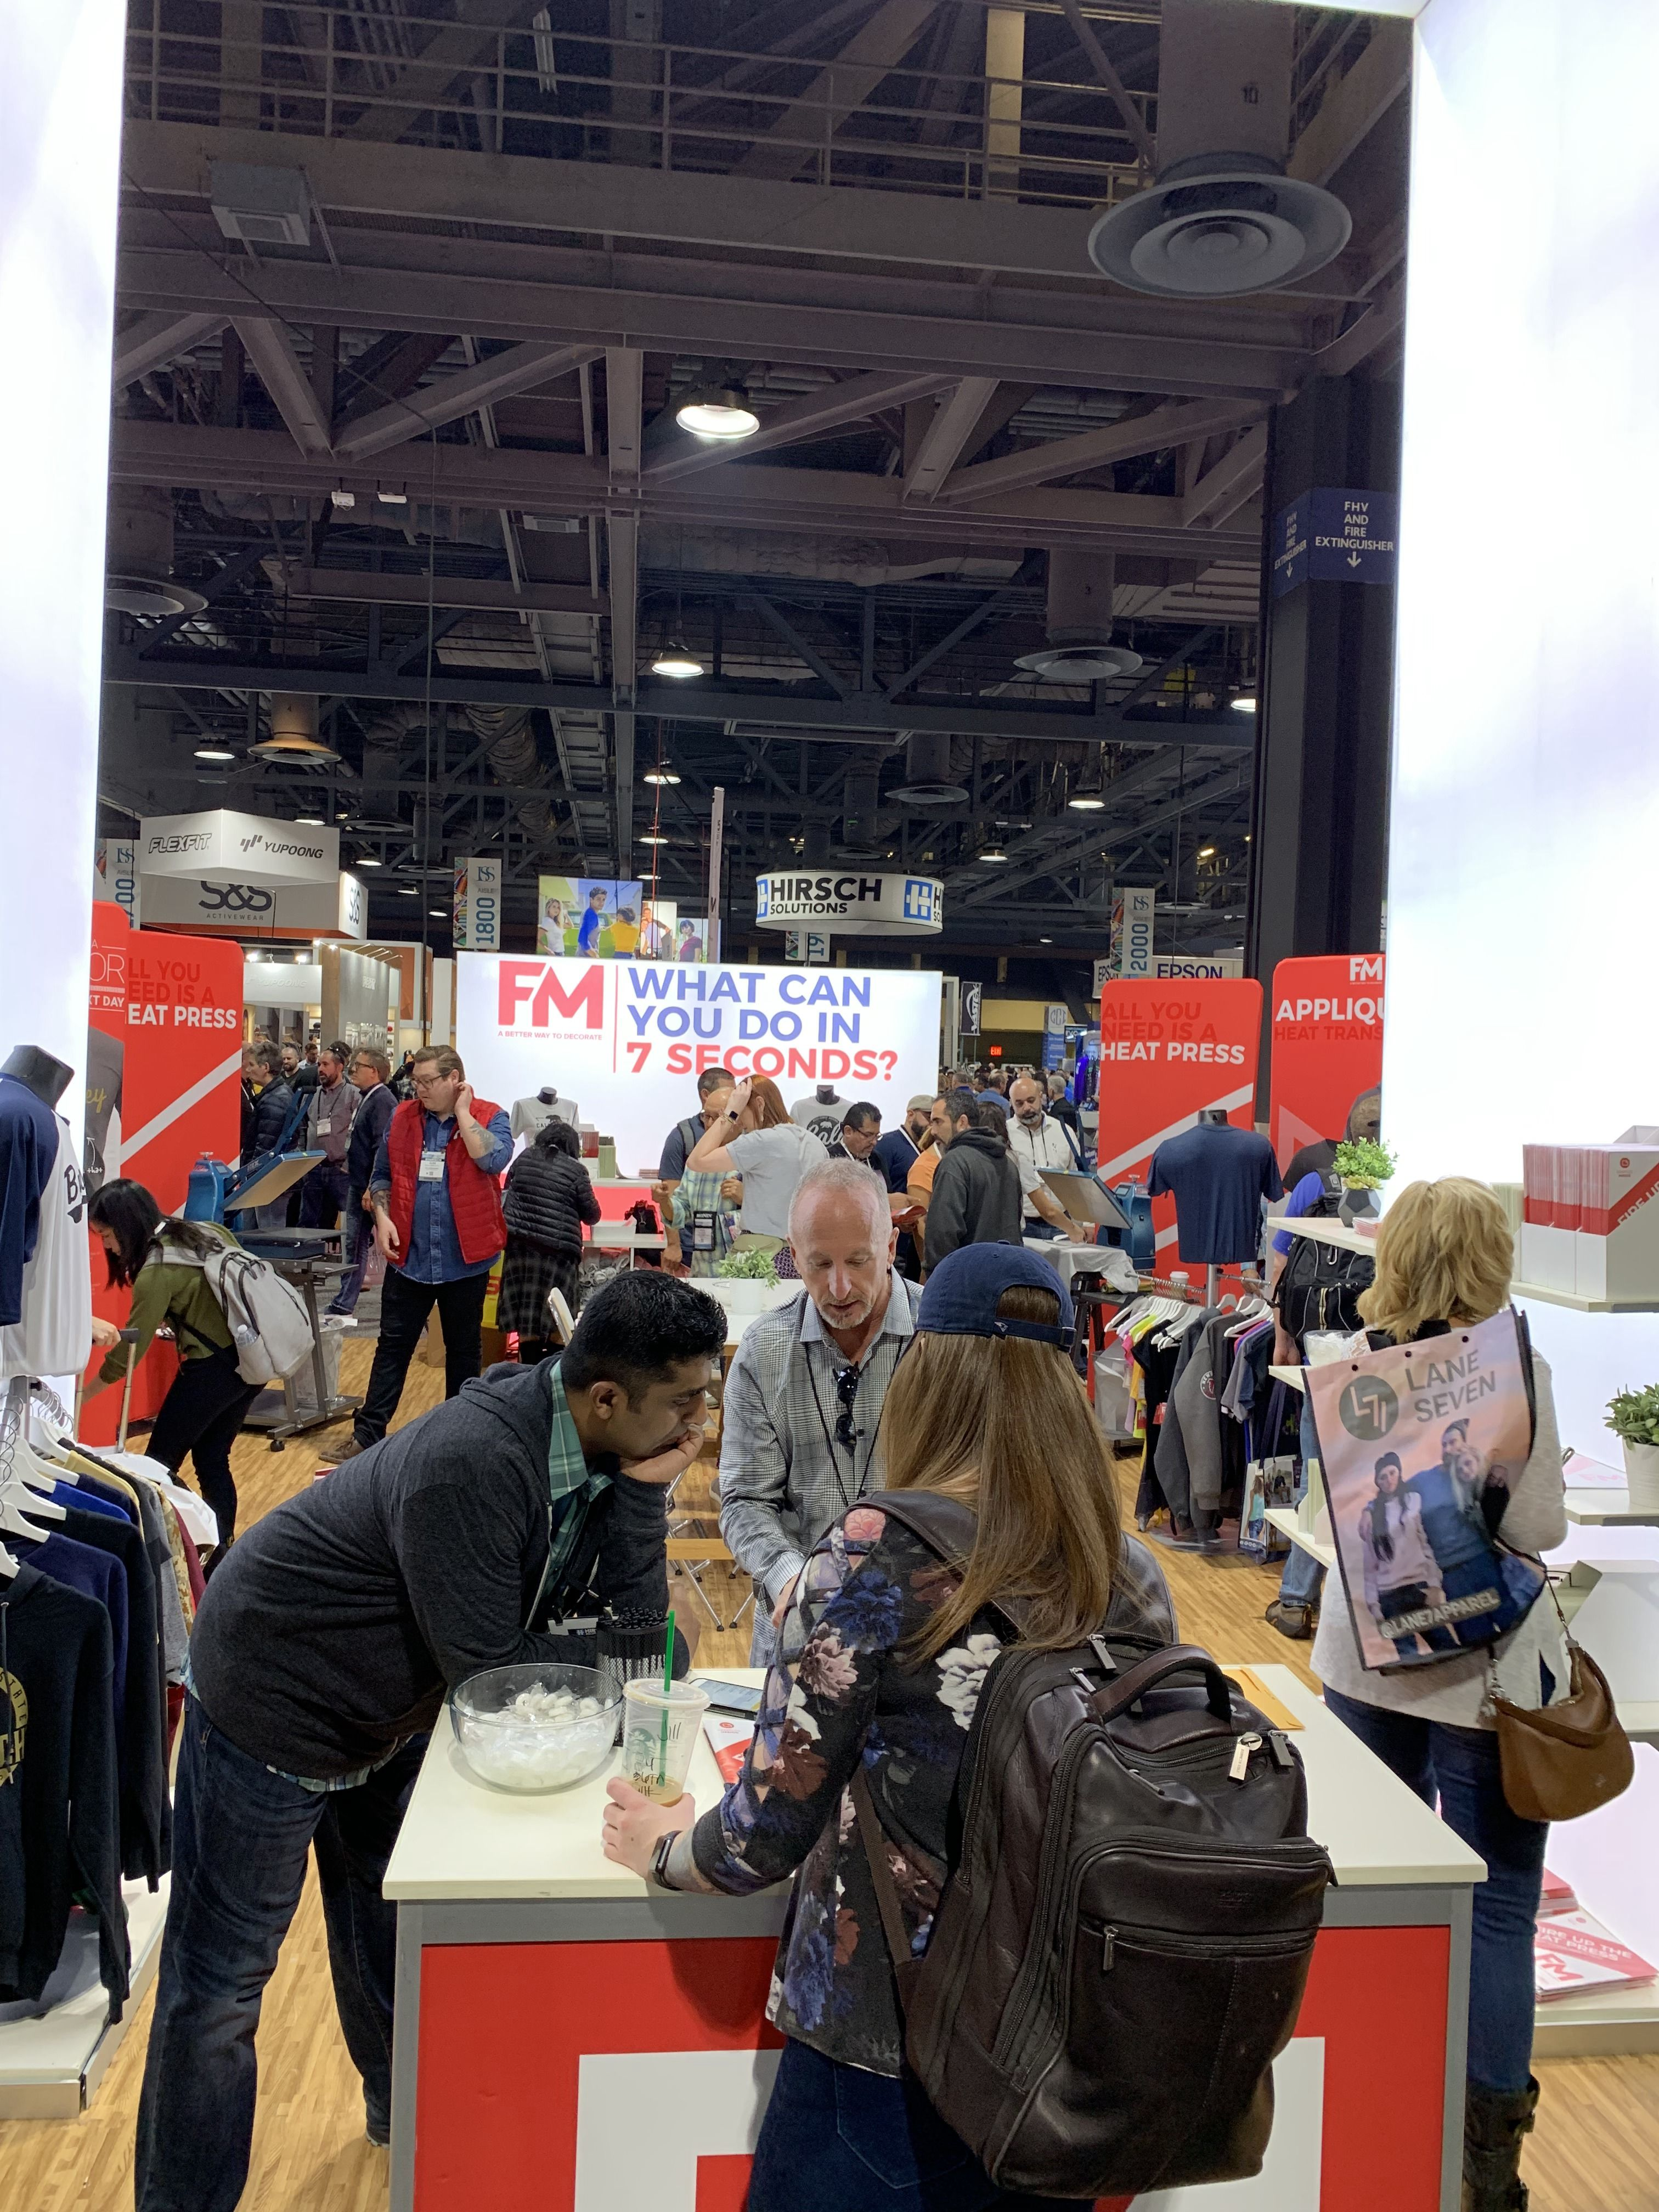 ISS Long Beach 2019 | Trade Shows in 2019 | Trade show